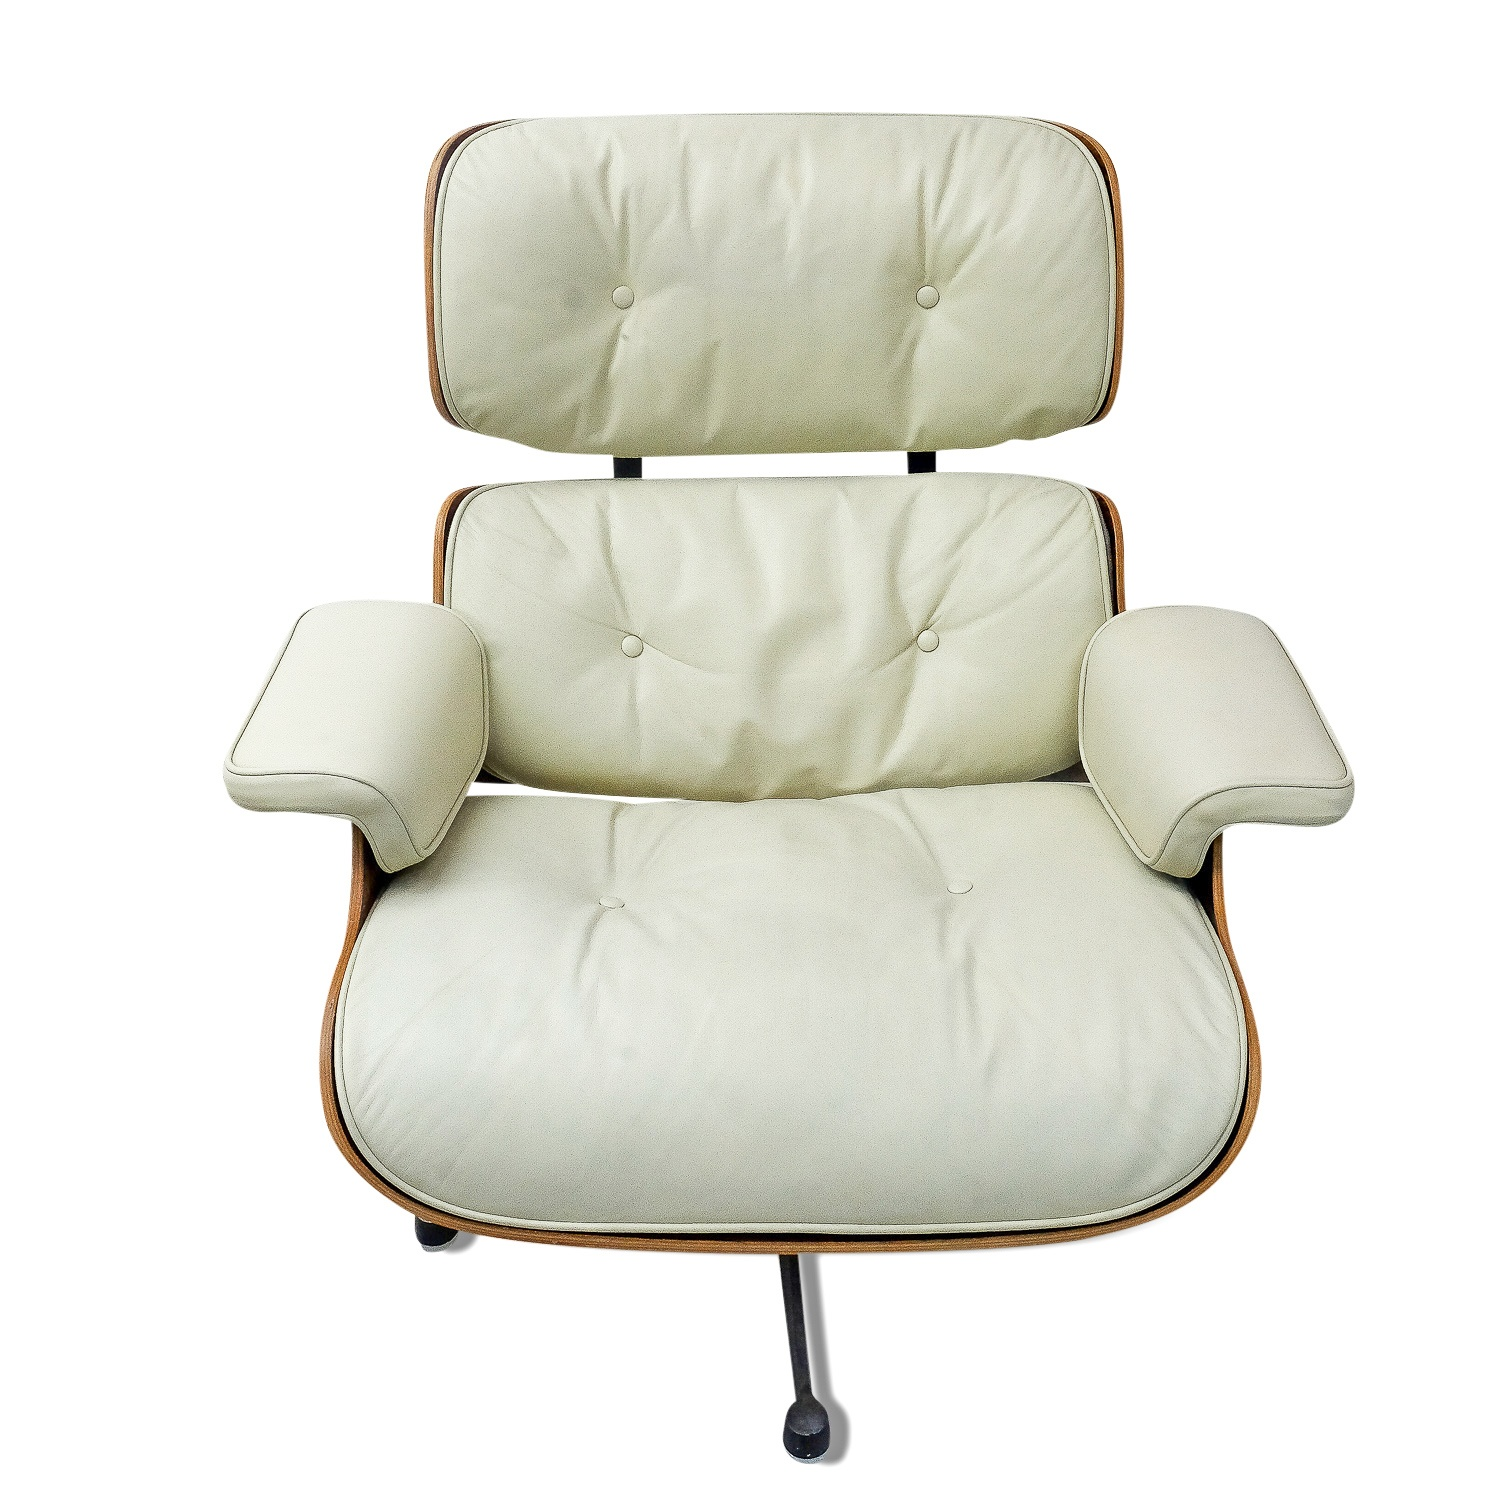 Superb Mobilier International Eames Lounge Chair Ottoman Rio Palisander Caraccident5 Cool Chair Designs And Ideas Caraccident5Info